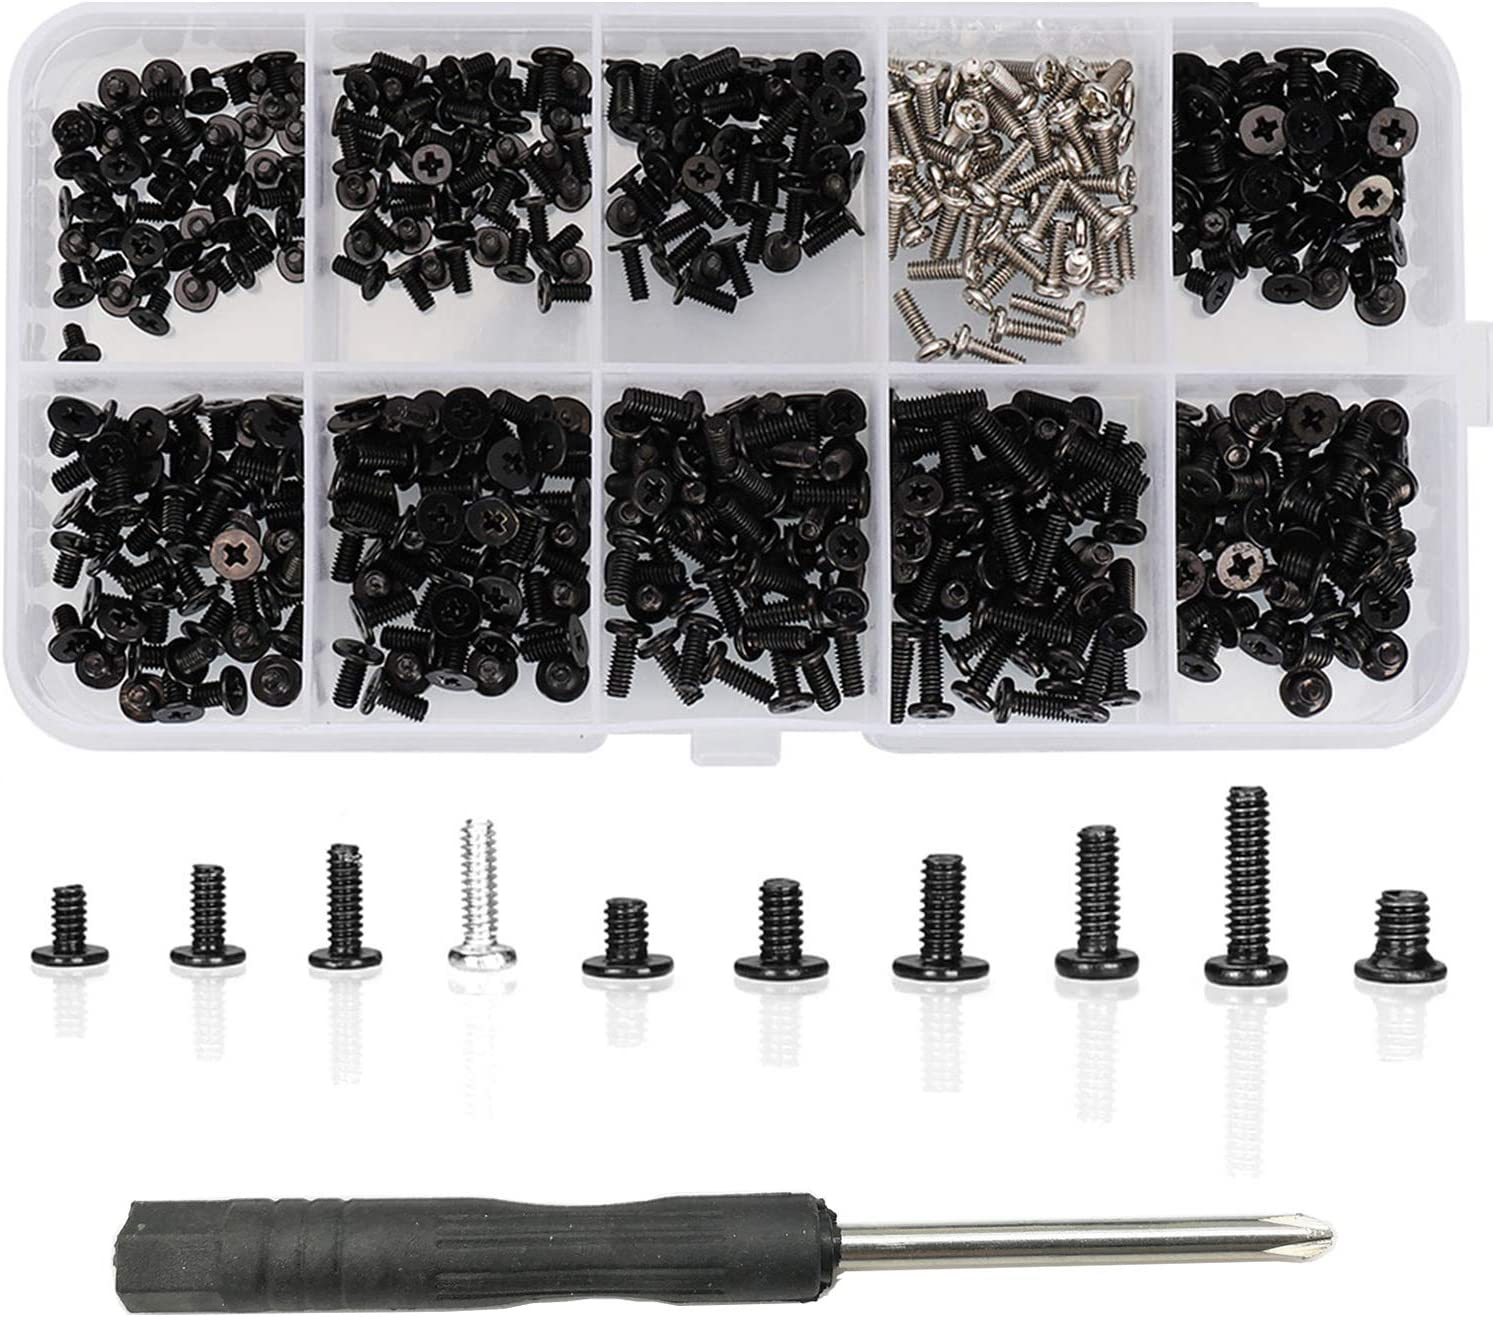 HanTof 500pcs M2 M2.5 M3 Laptop Notebook Computer Screw Kit Set with Screwdriver for IBM HP Dell Lenovo Samsung Sony Toshiba Gateway Acer